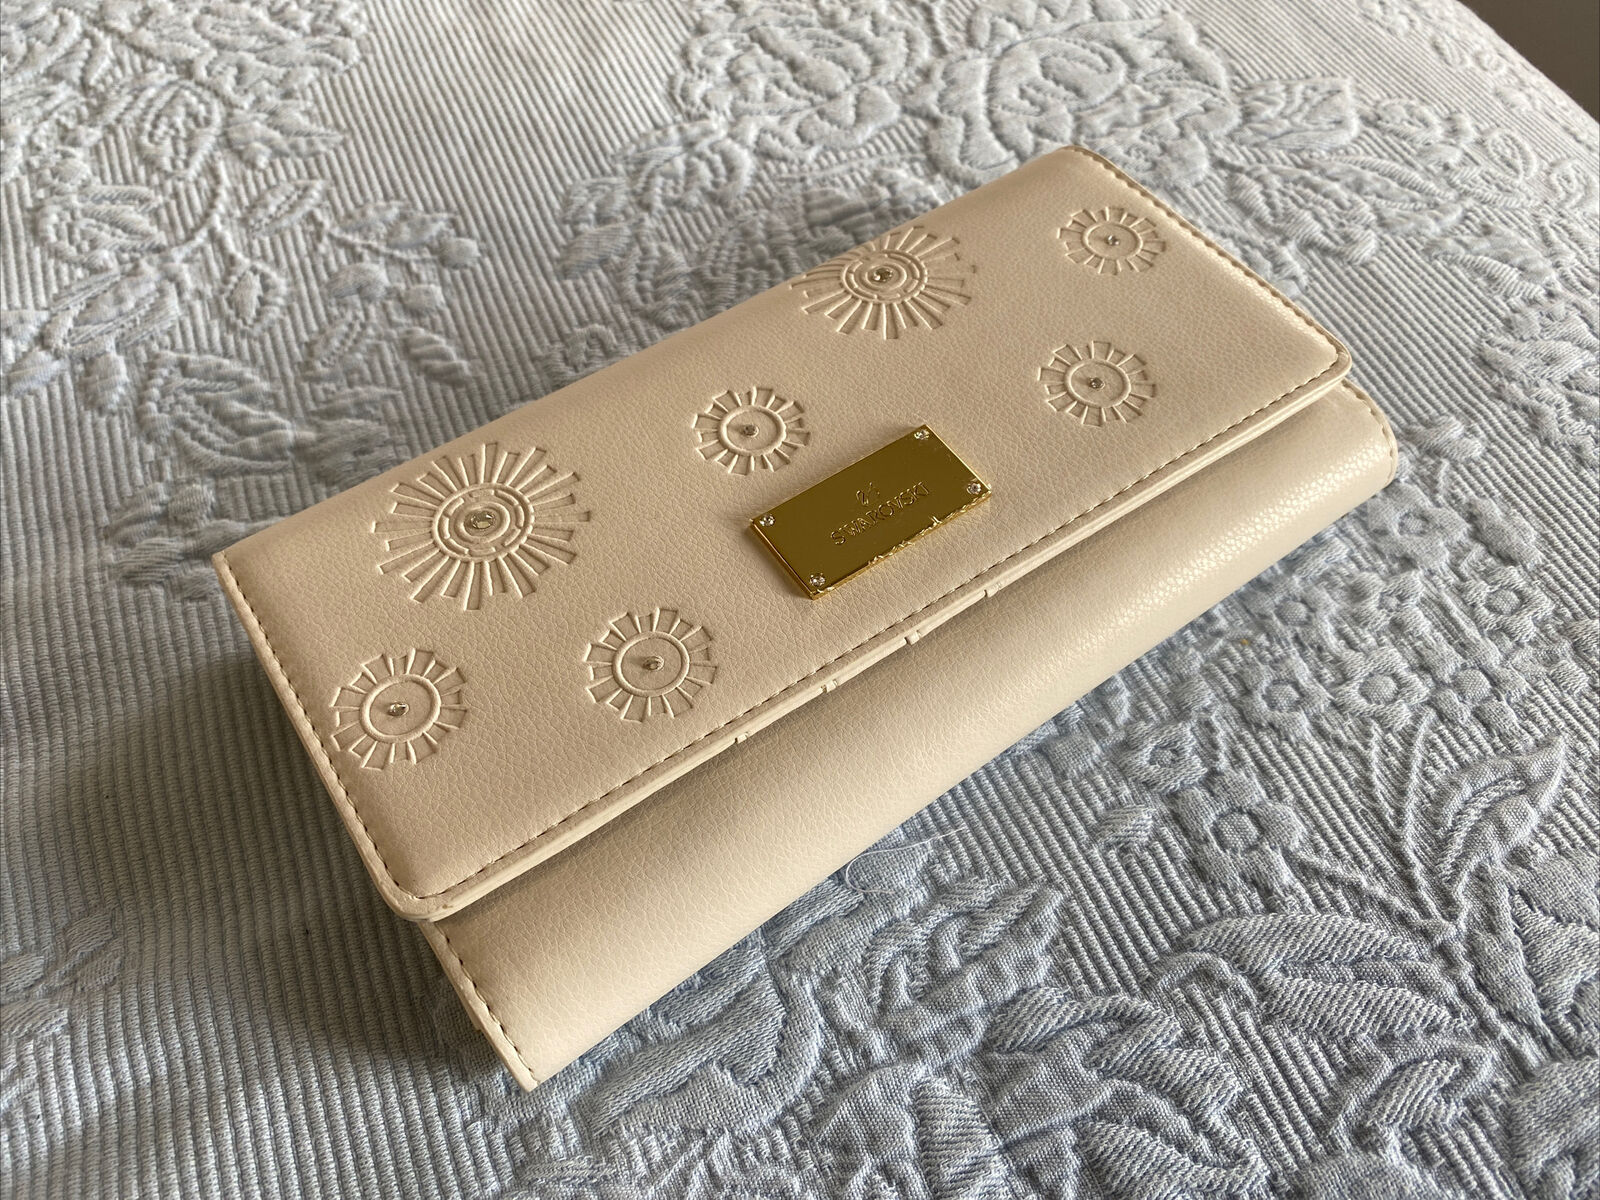 Swarovski Travel Wallet - New in box - Buff Leather, Crystals, Imprinted Design